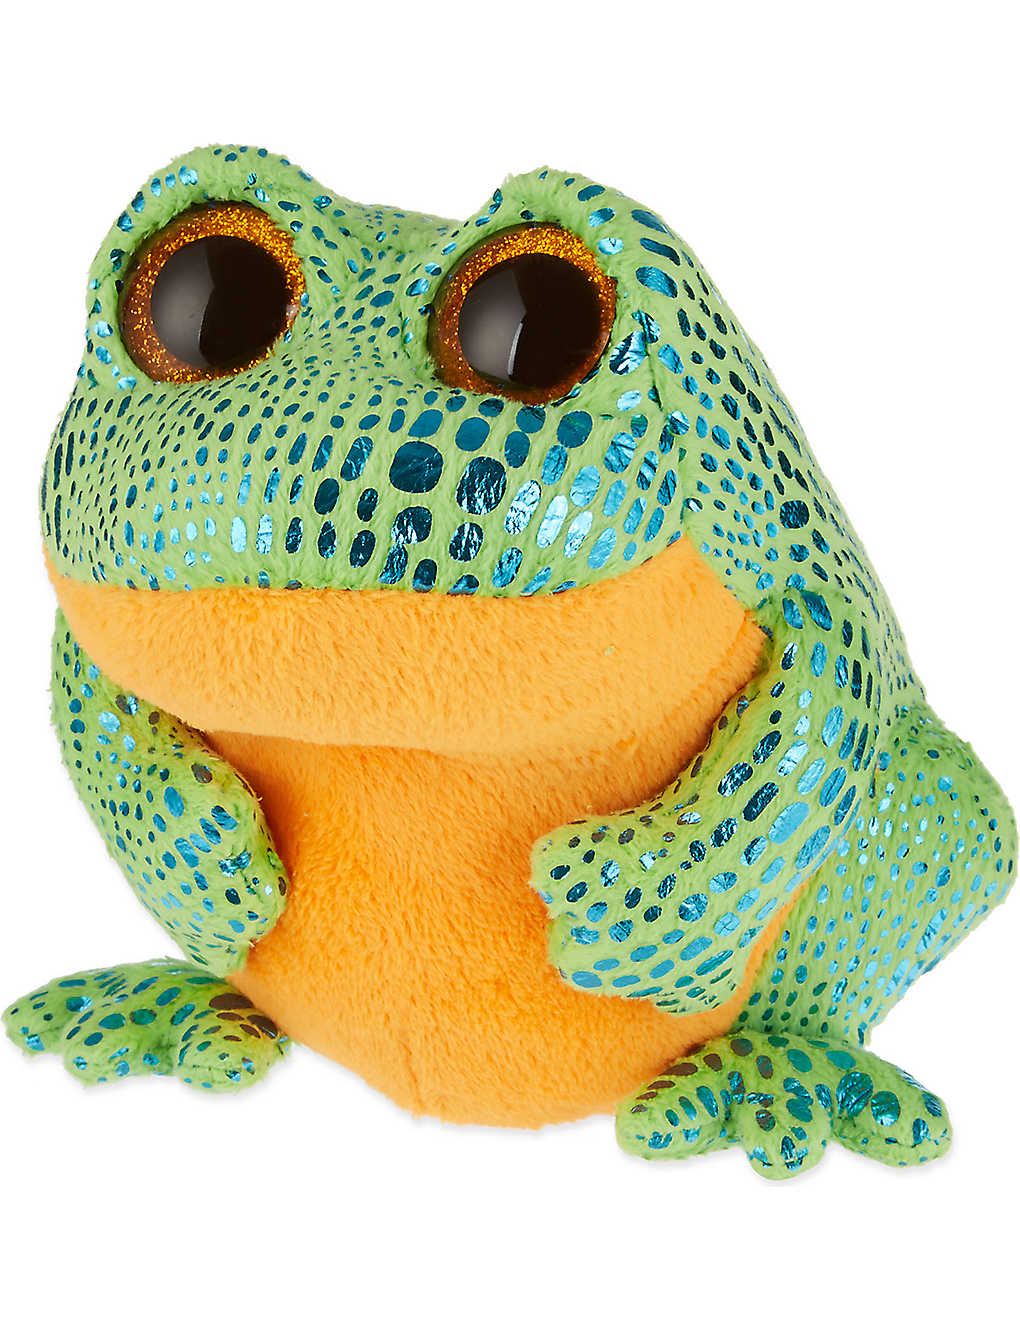 1bb174686fb TY - Beanie boos speckles frog plush